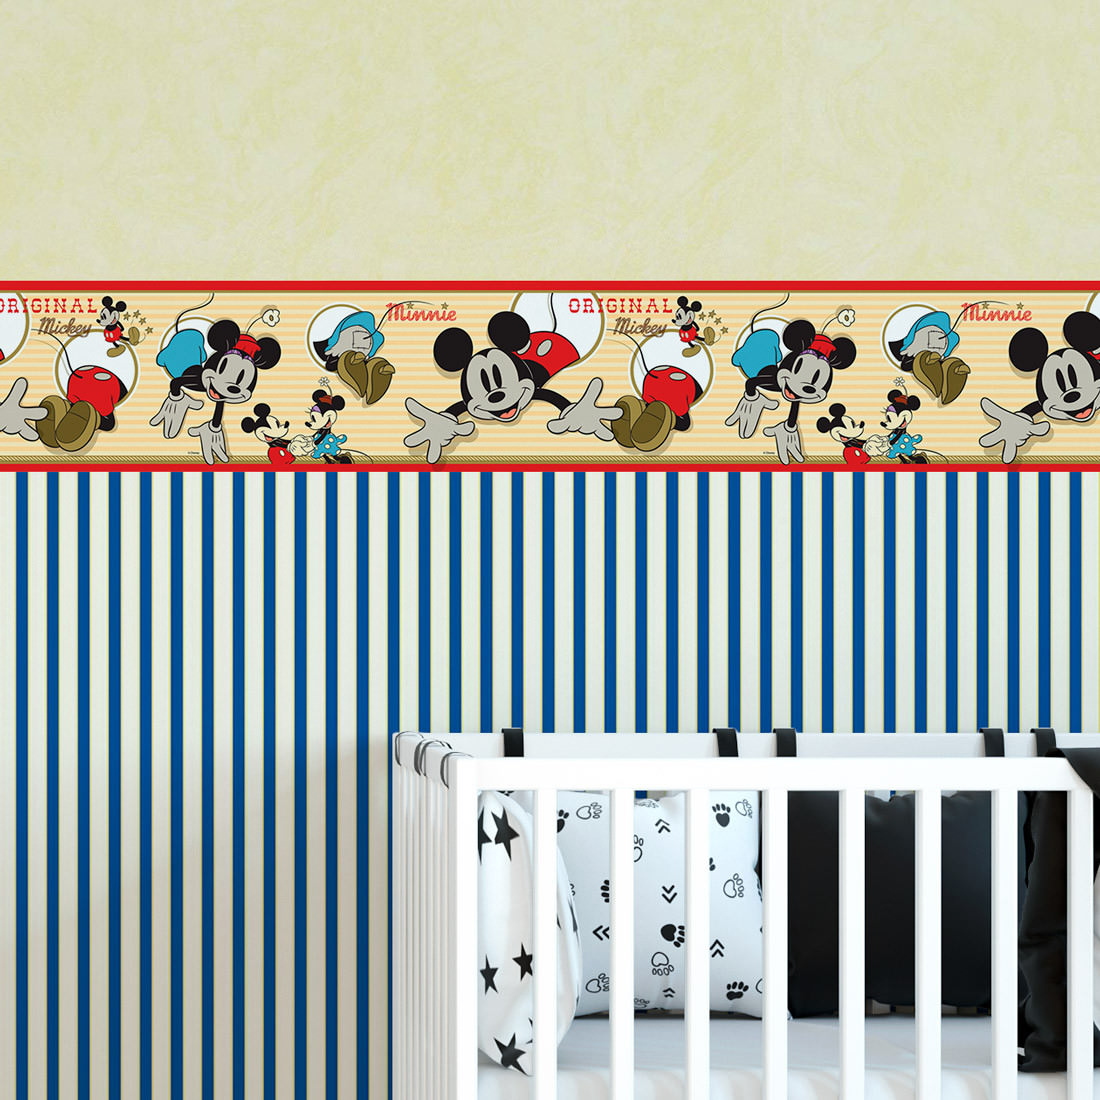 Faixa Decorativa Infantil Mickey & Minnie - Disney